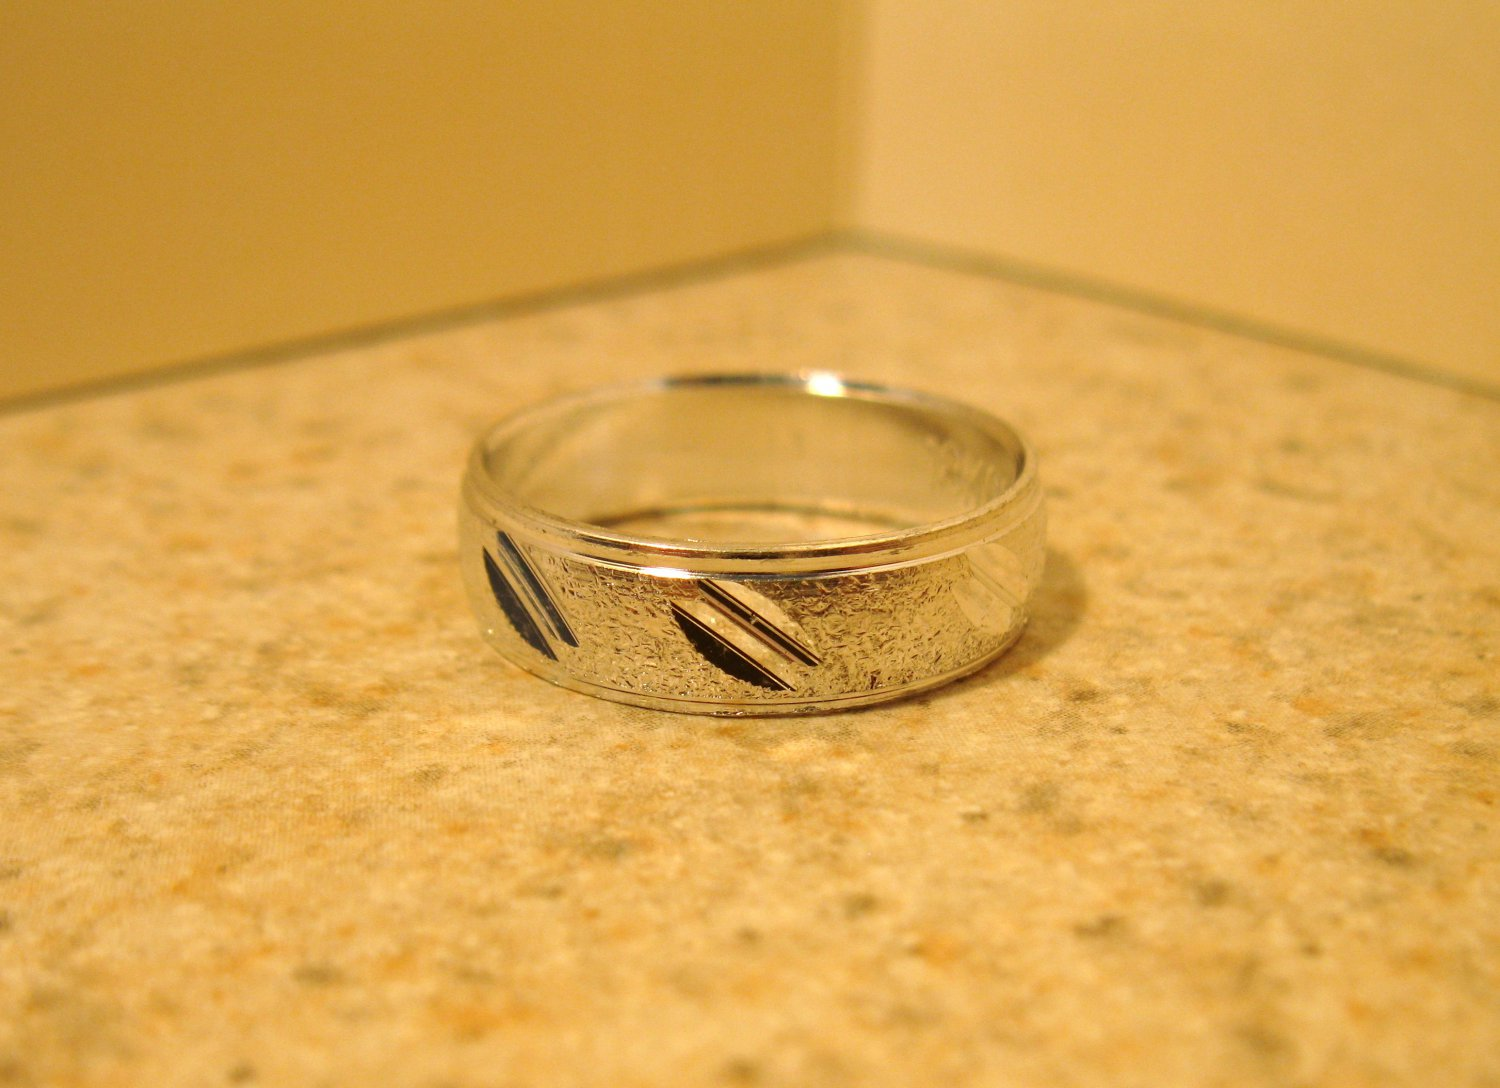 Silver Plated Double Wide Notch Design Aluminum Ring Unisex Size 8 New! #983